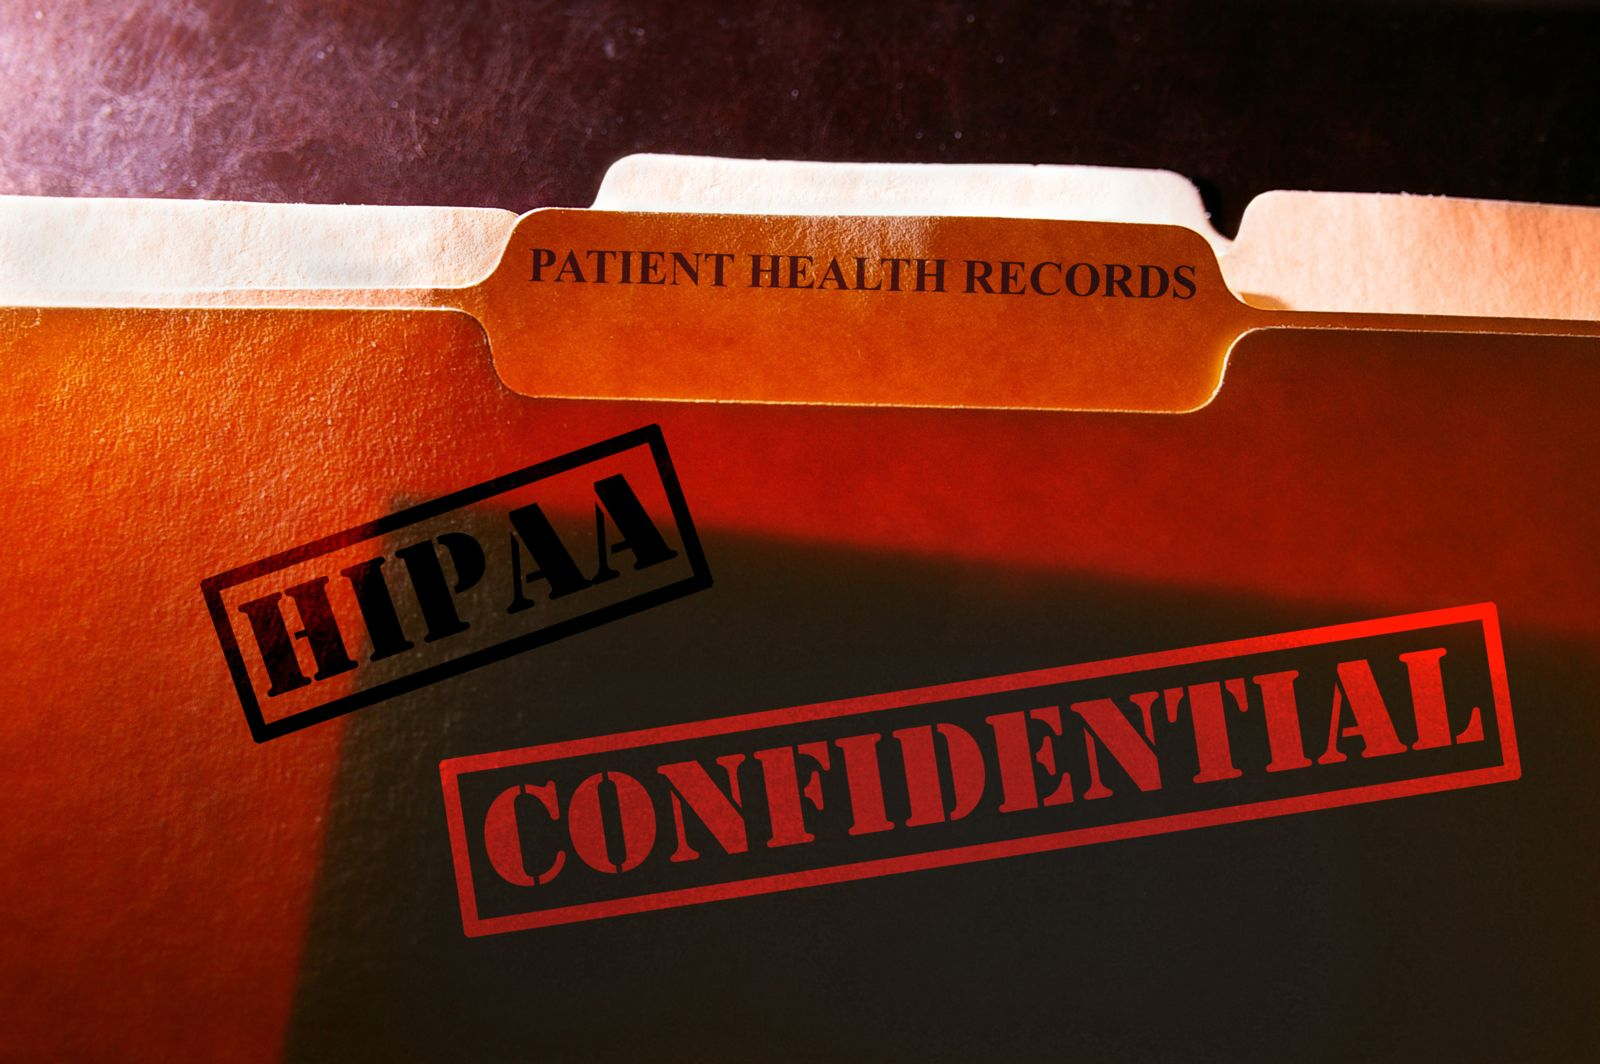 HIPAA Confidential Patient Health Records